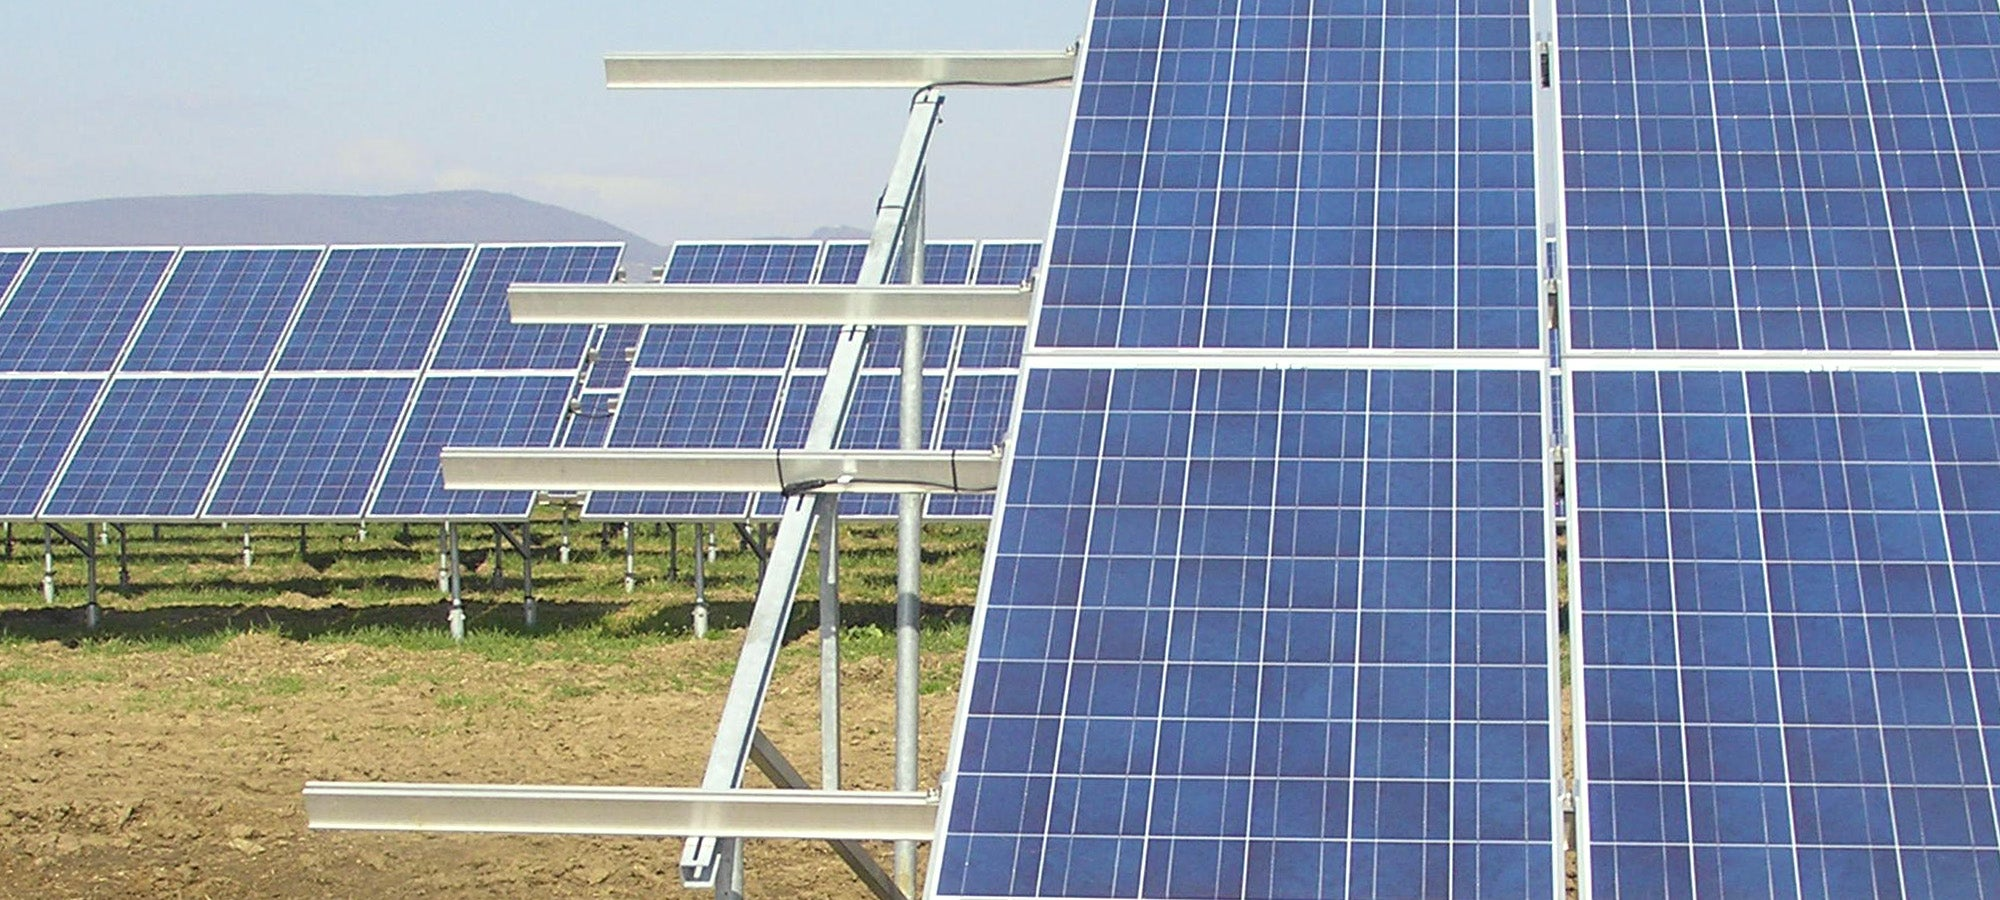 An Origis Energy solar farm. Courtesy Origis Energy